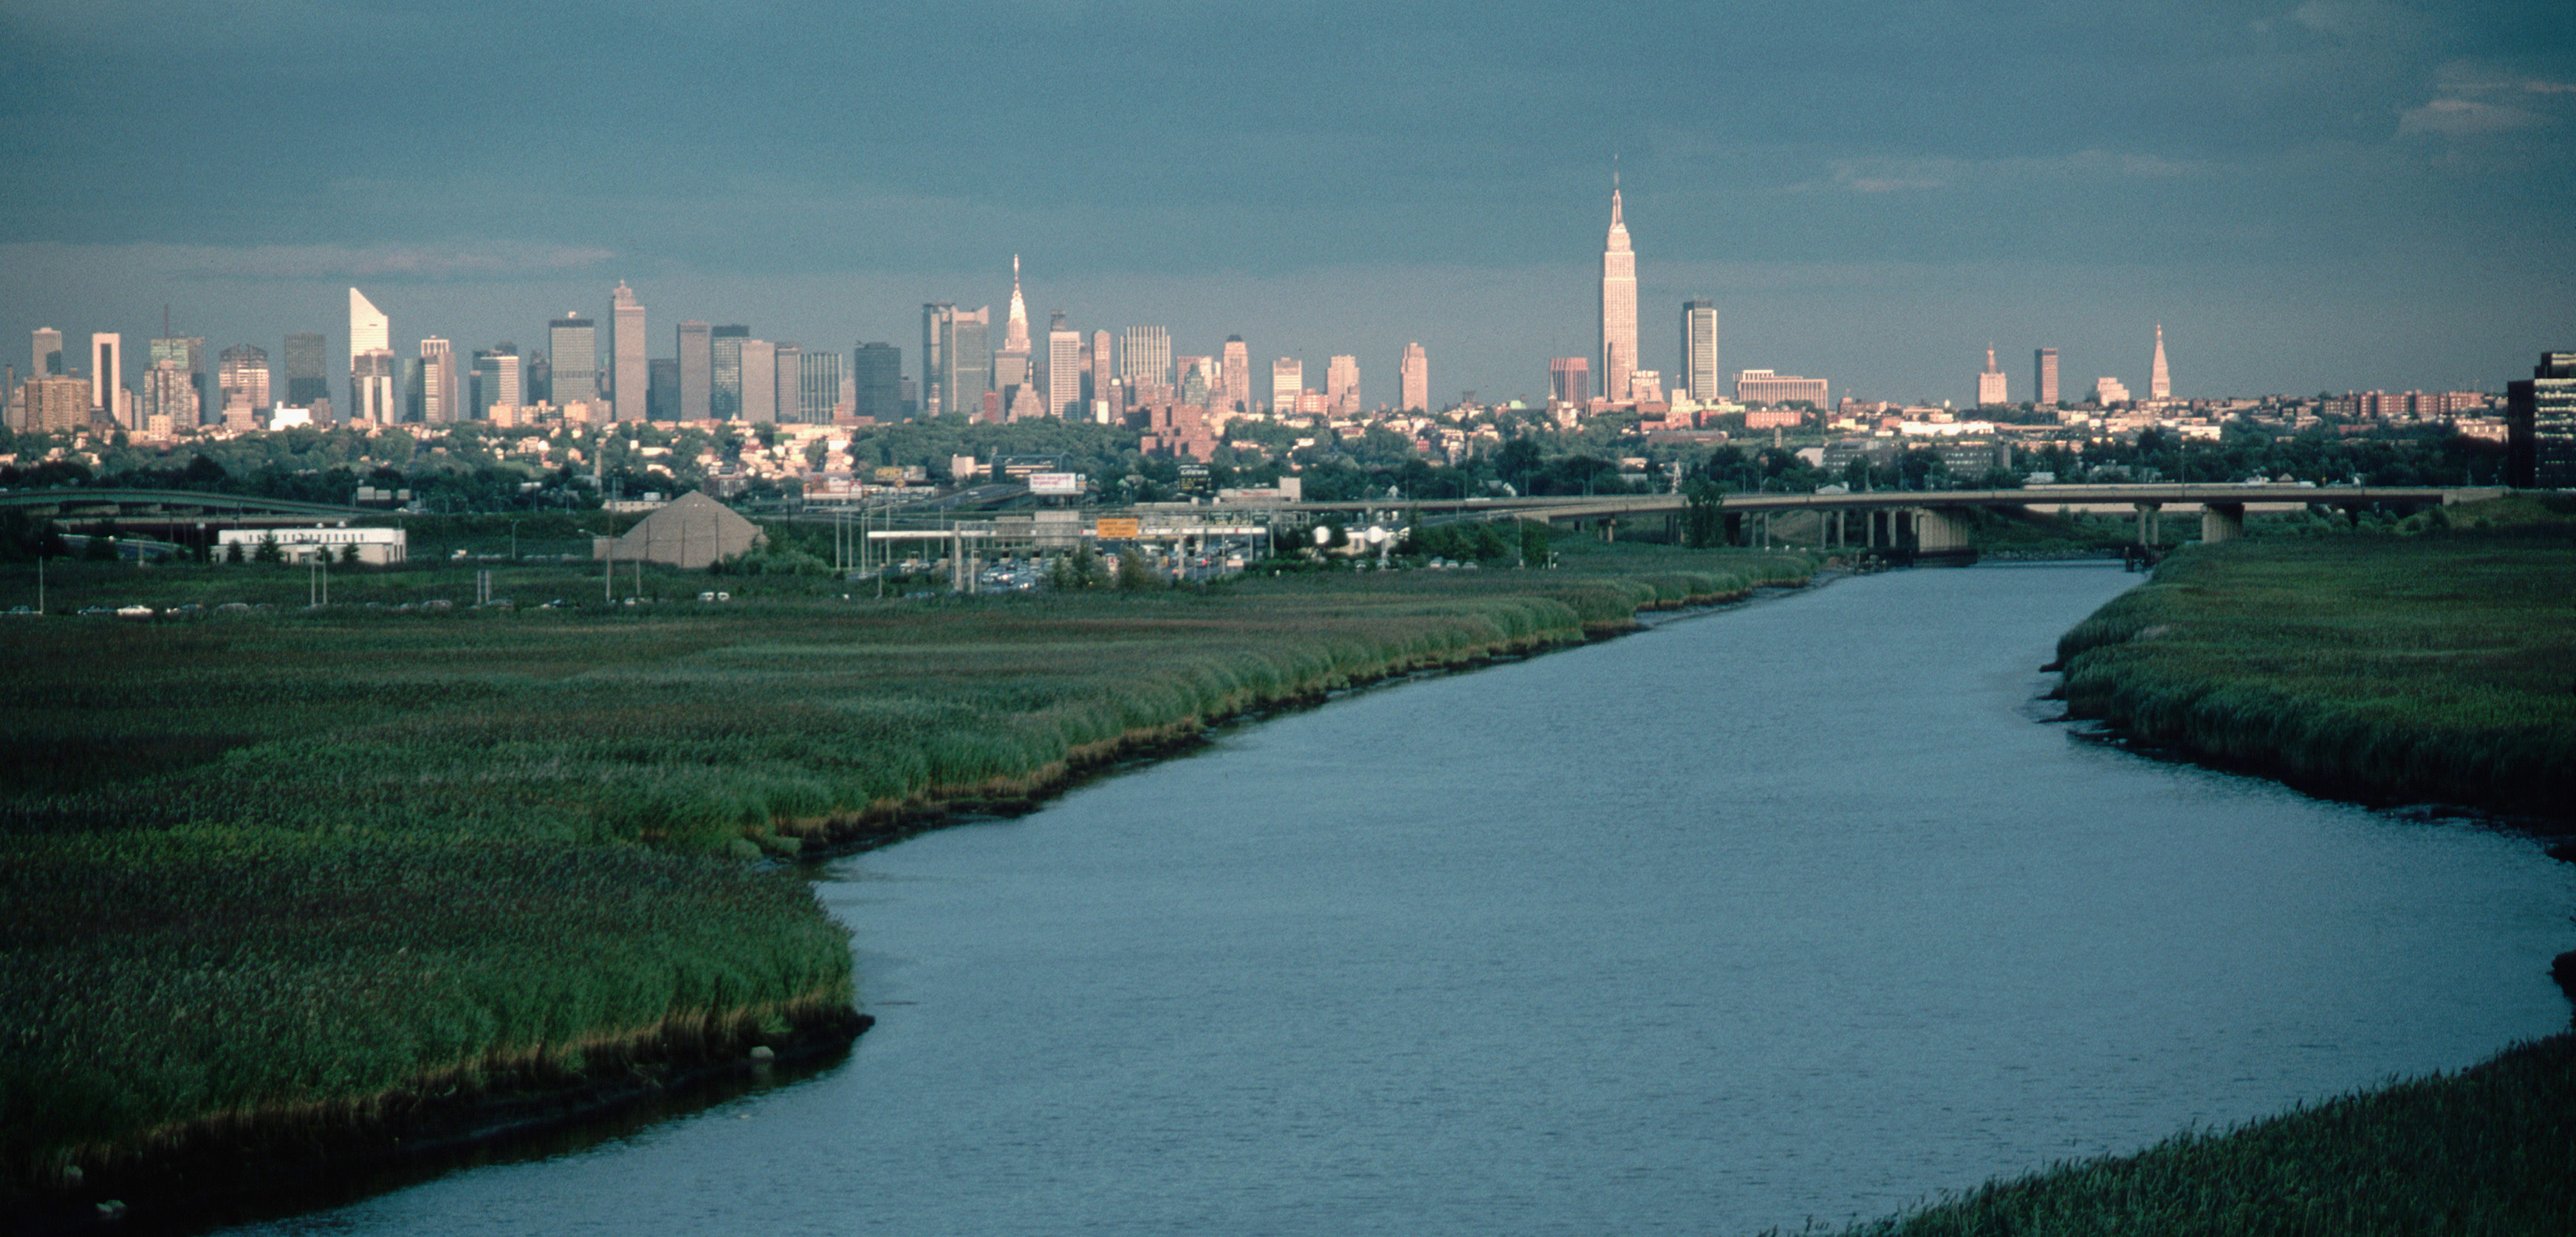 The New Jersey Meadowlands circa 1982. Photo © Kelly-Mooney Photography/Corbis